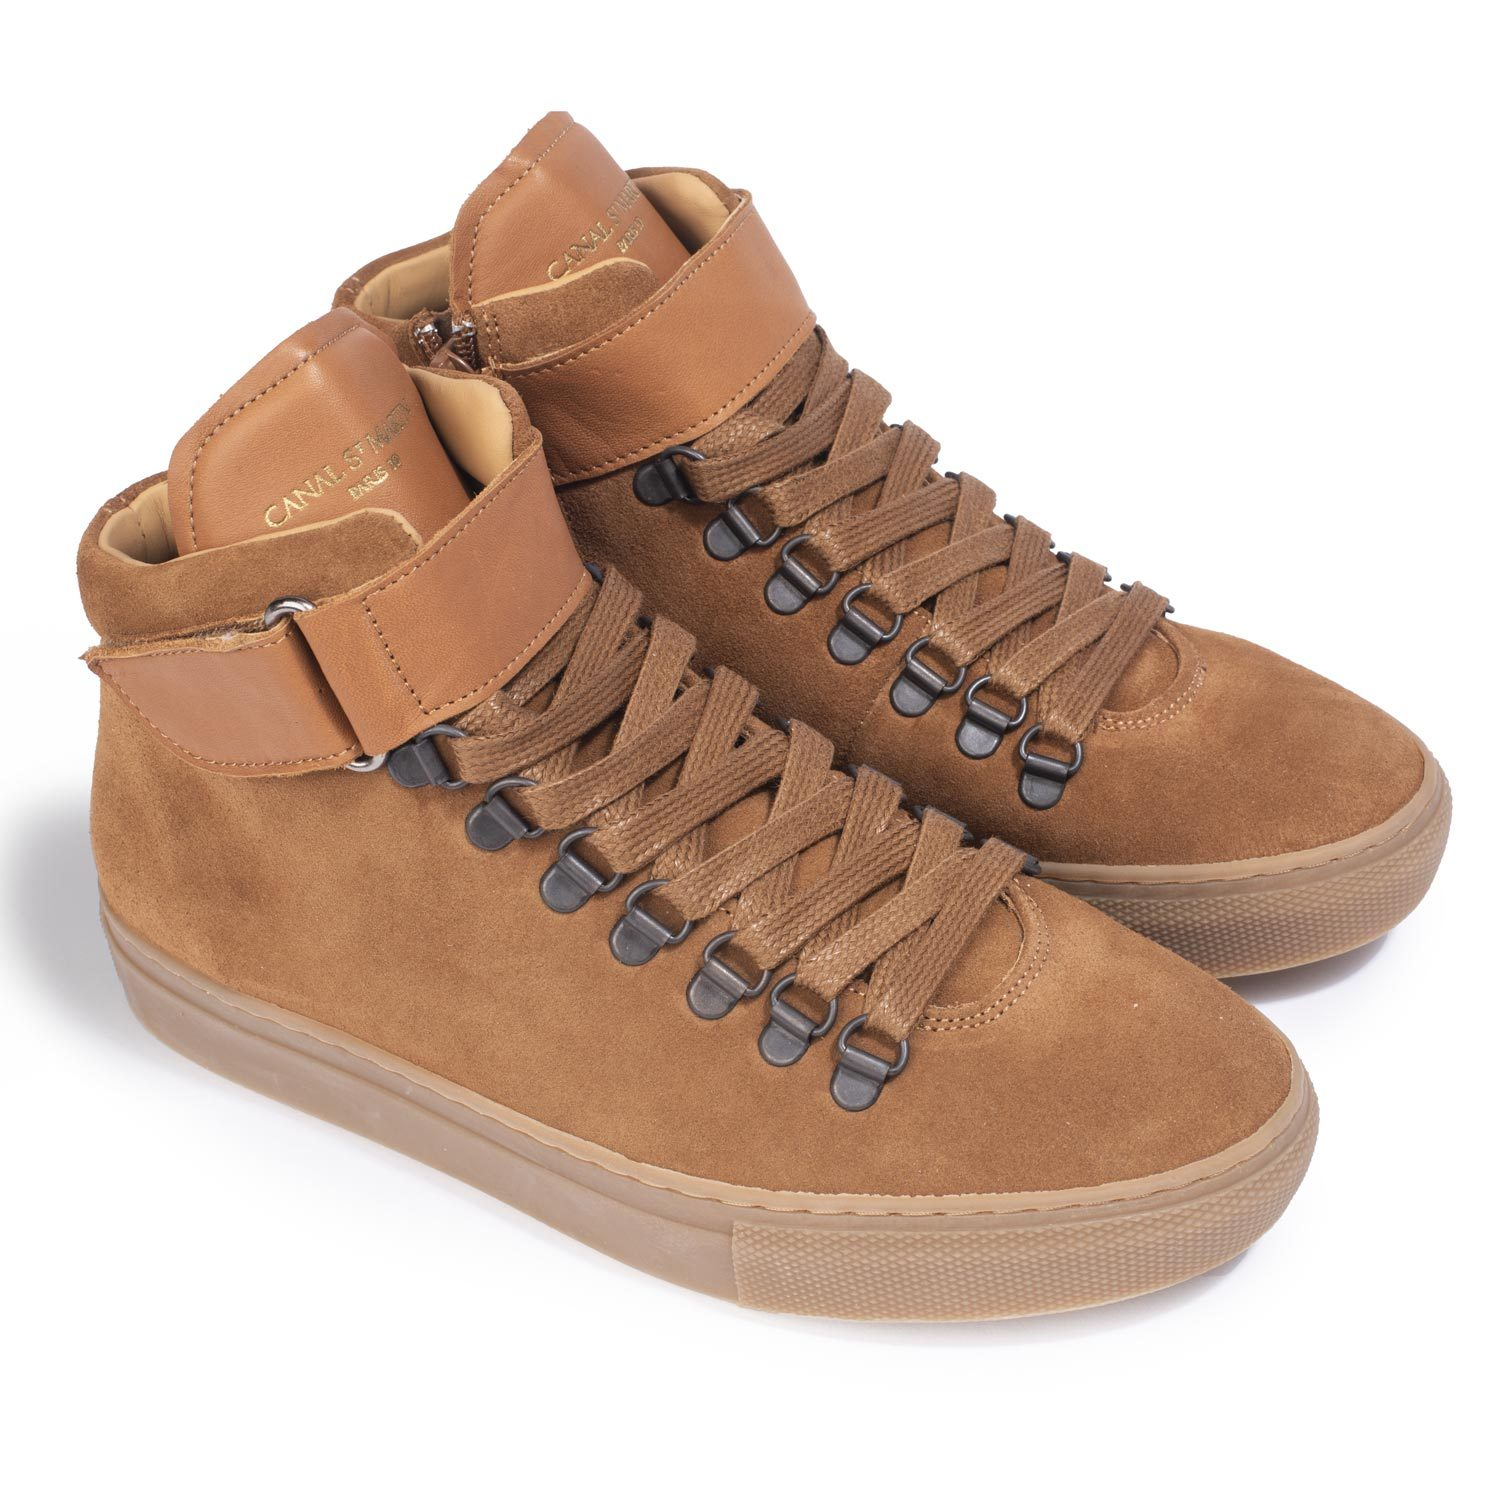 SNEAKERS FERRY VELOURS VEAU CAMEL